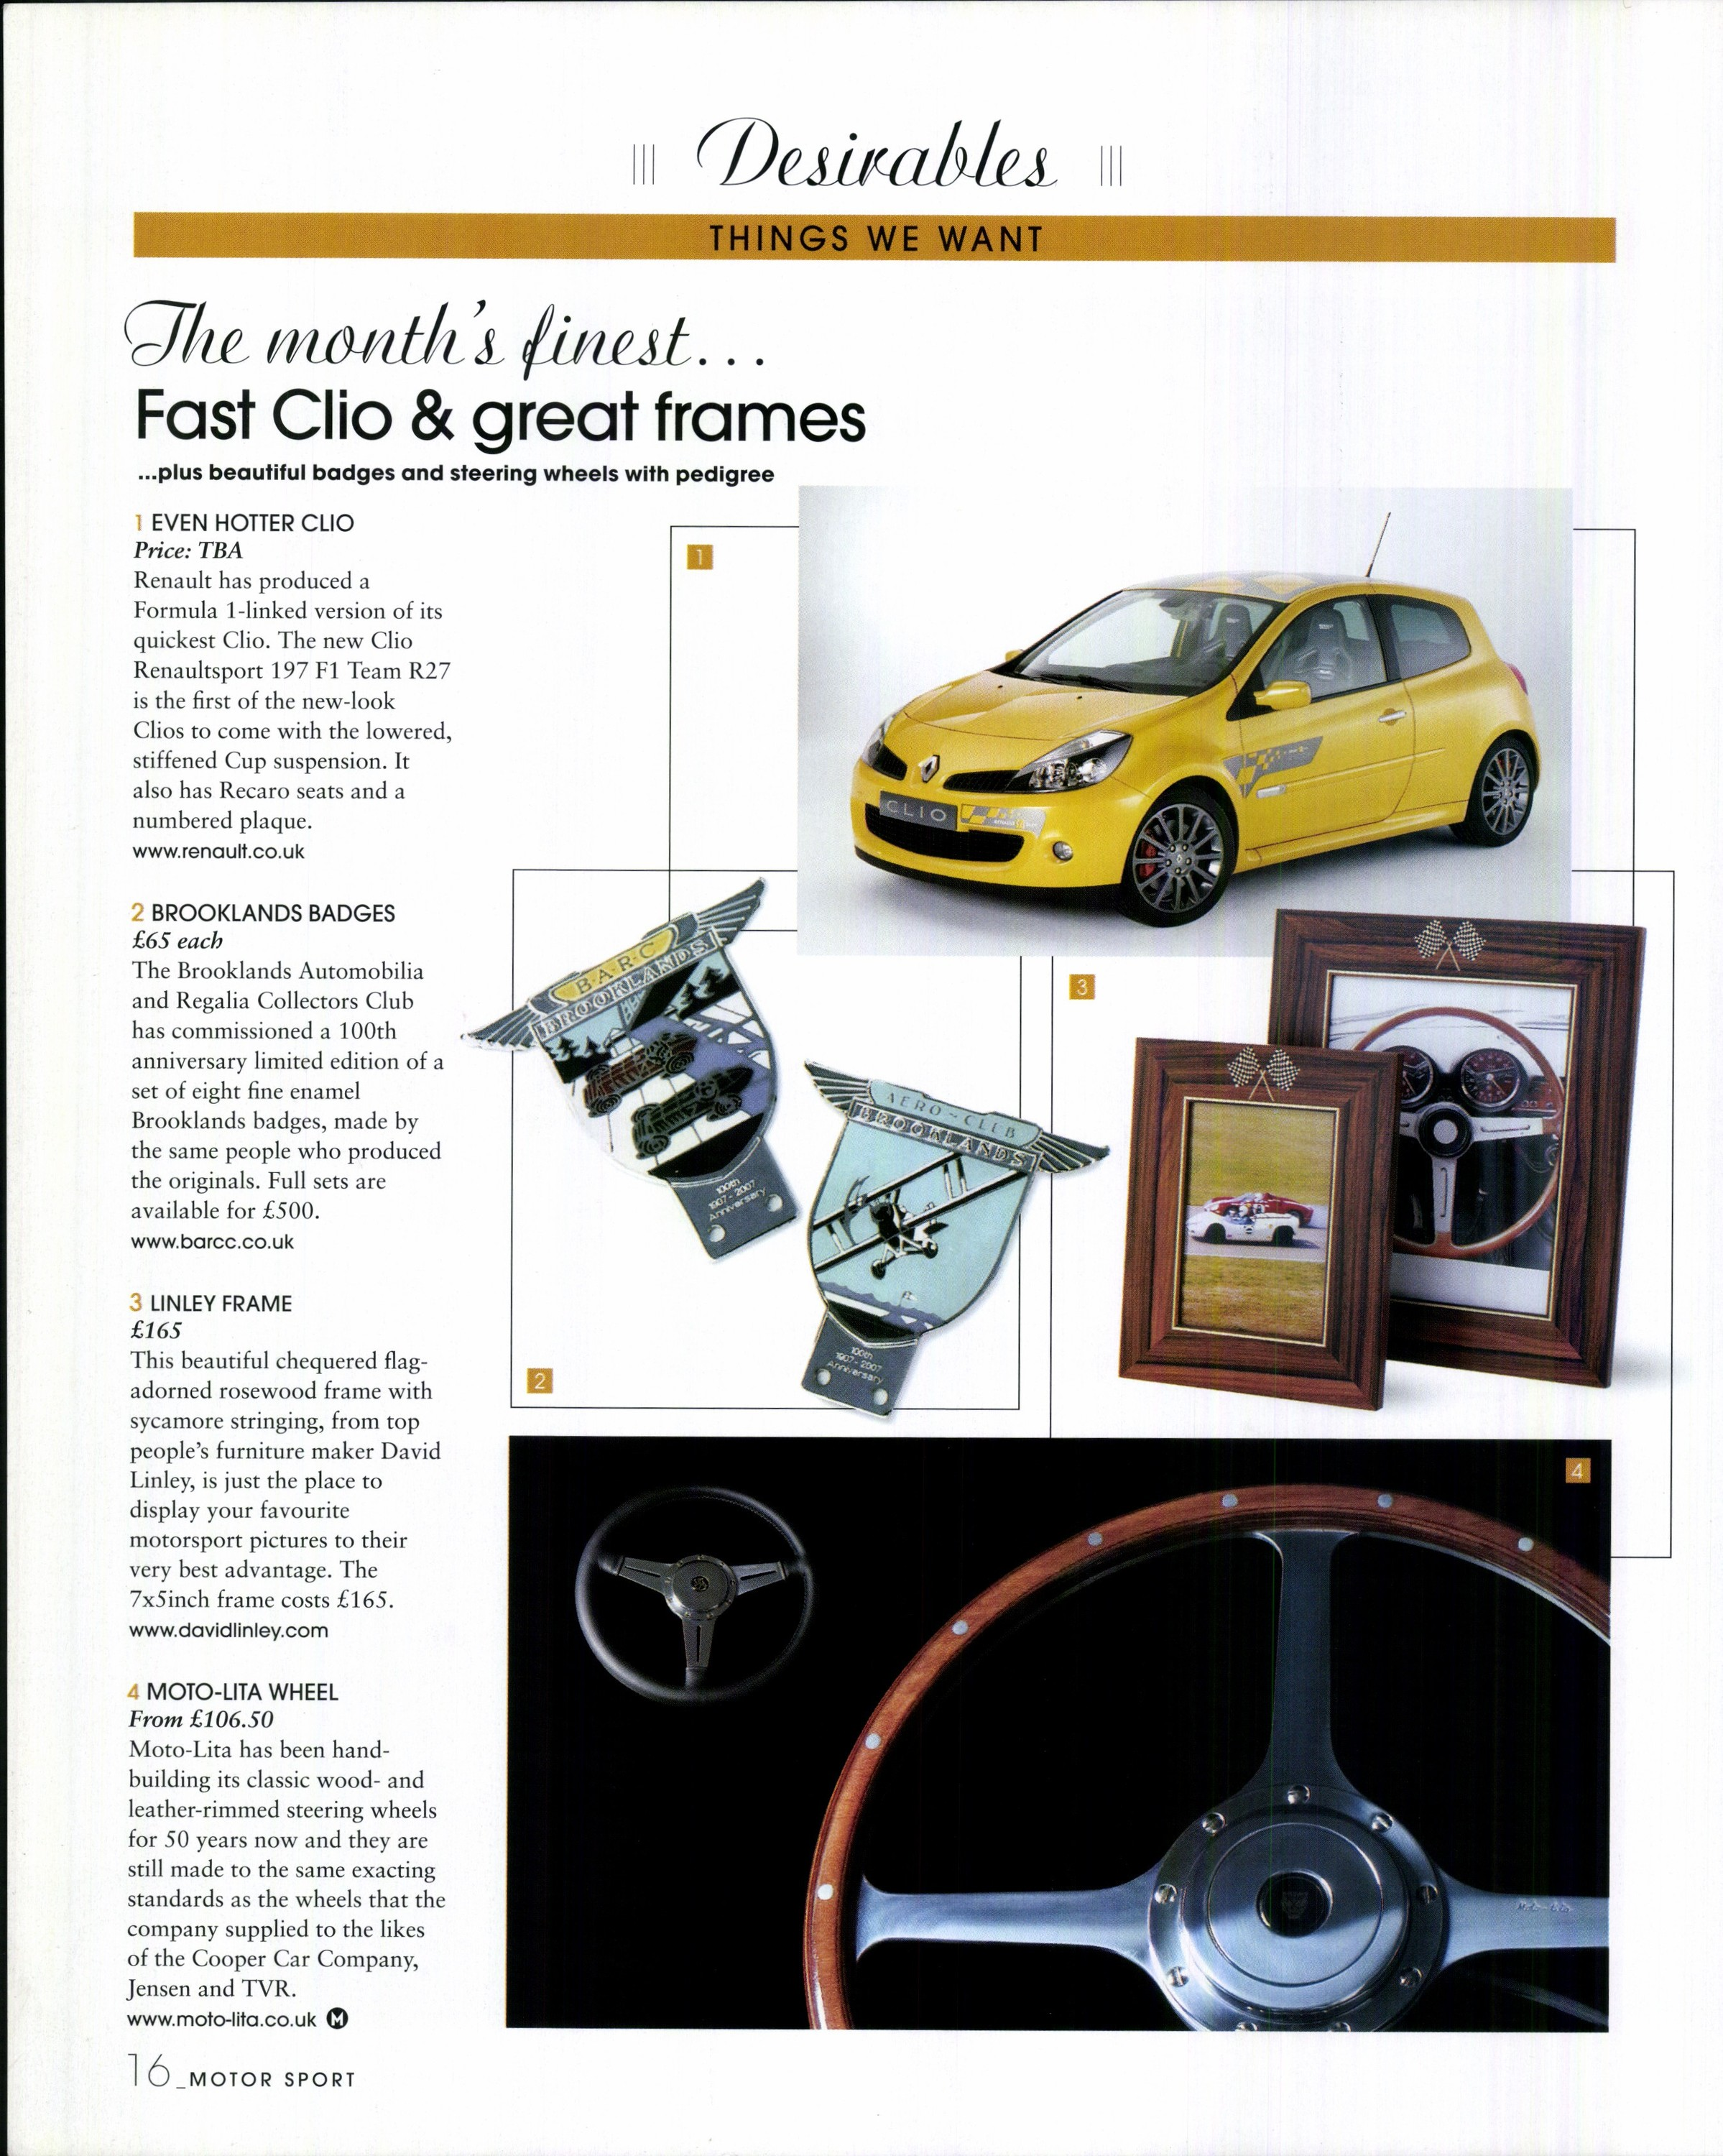 Fast Clio & great frames | Motor Sport Magazine Archive